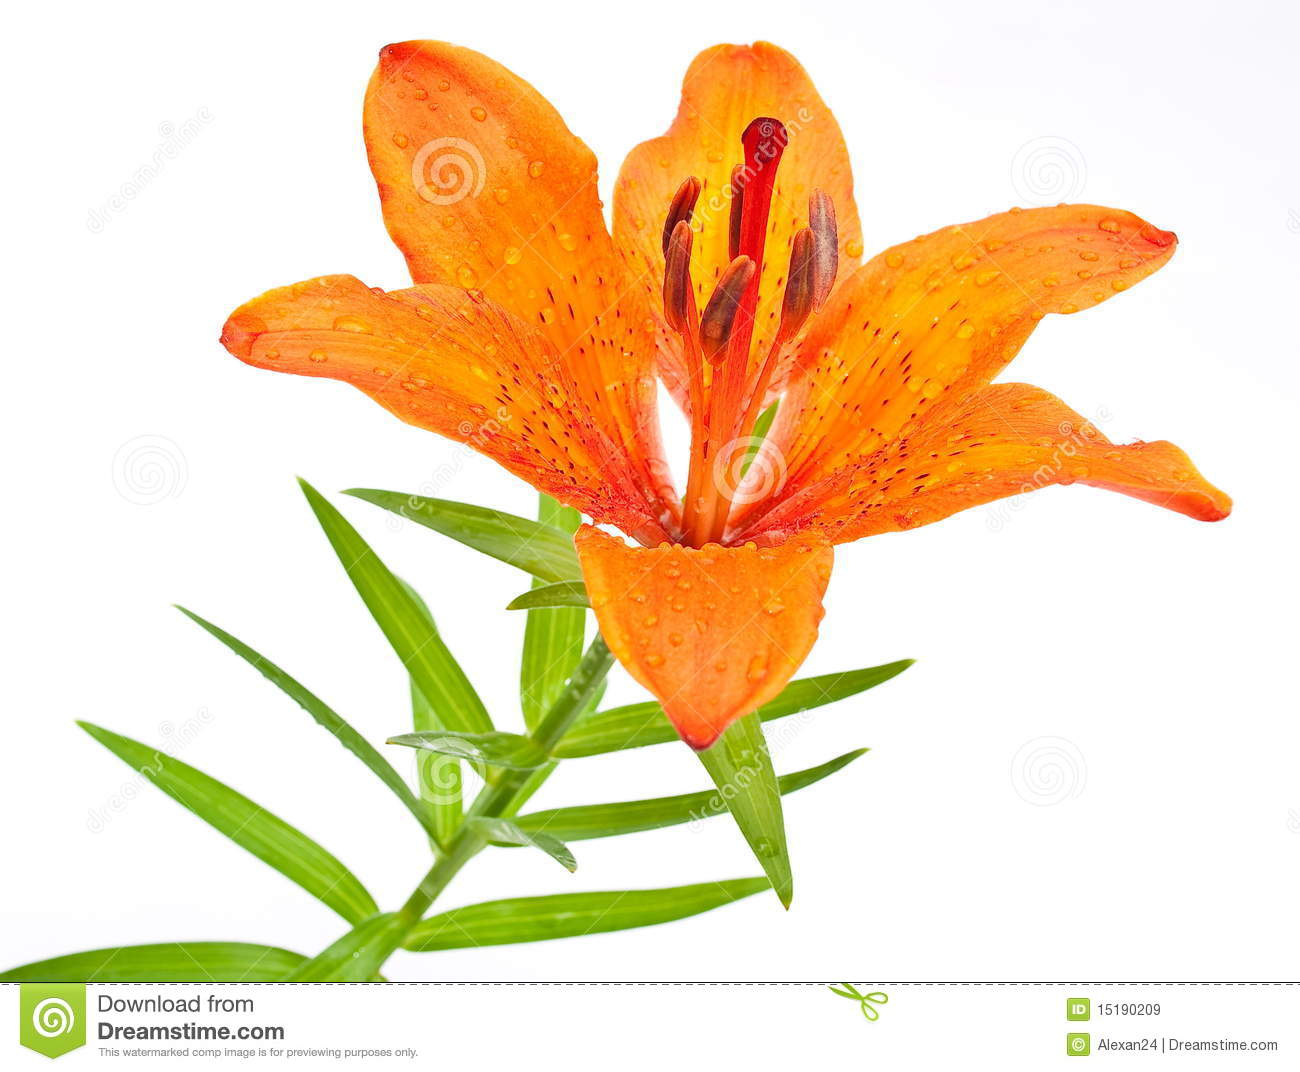 Tiger Lily clipart #10, Download drawings